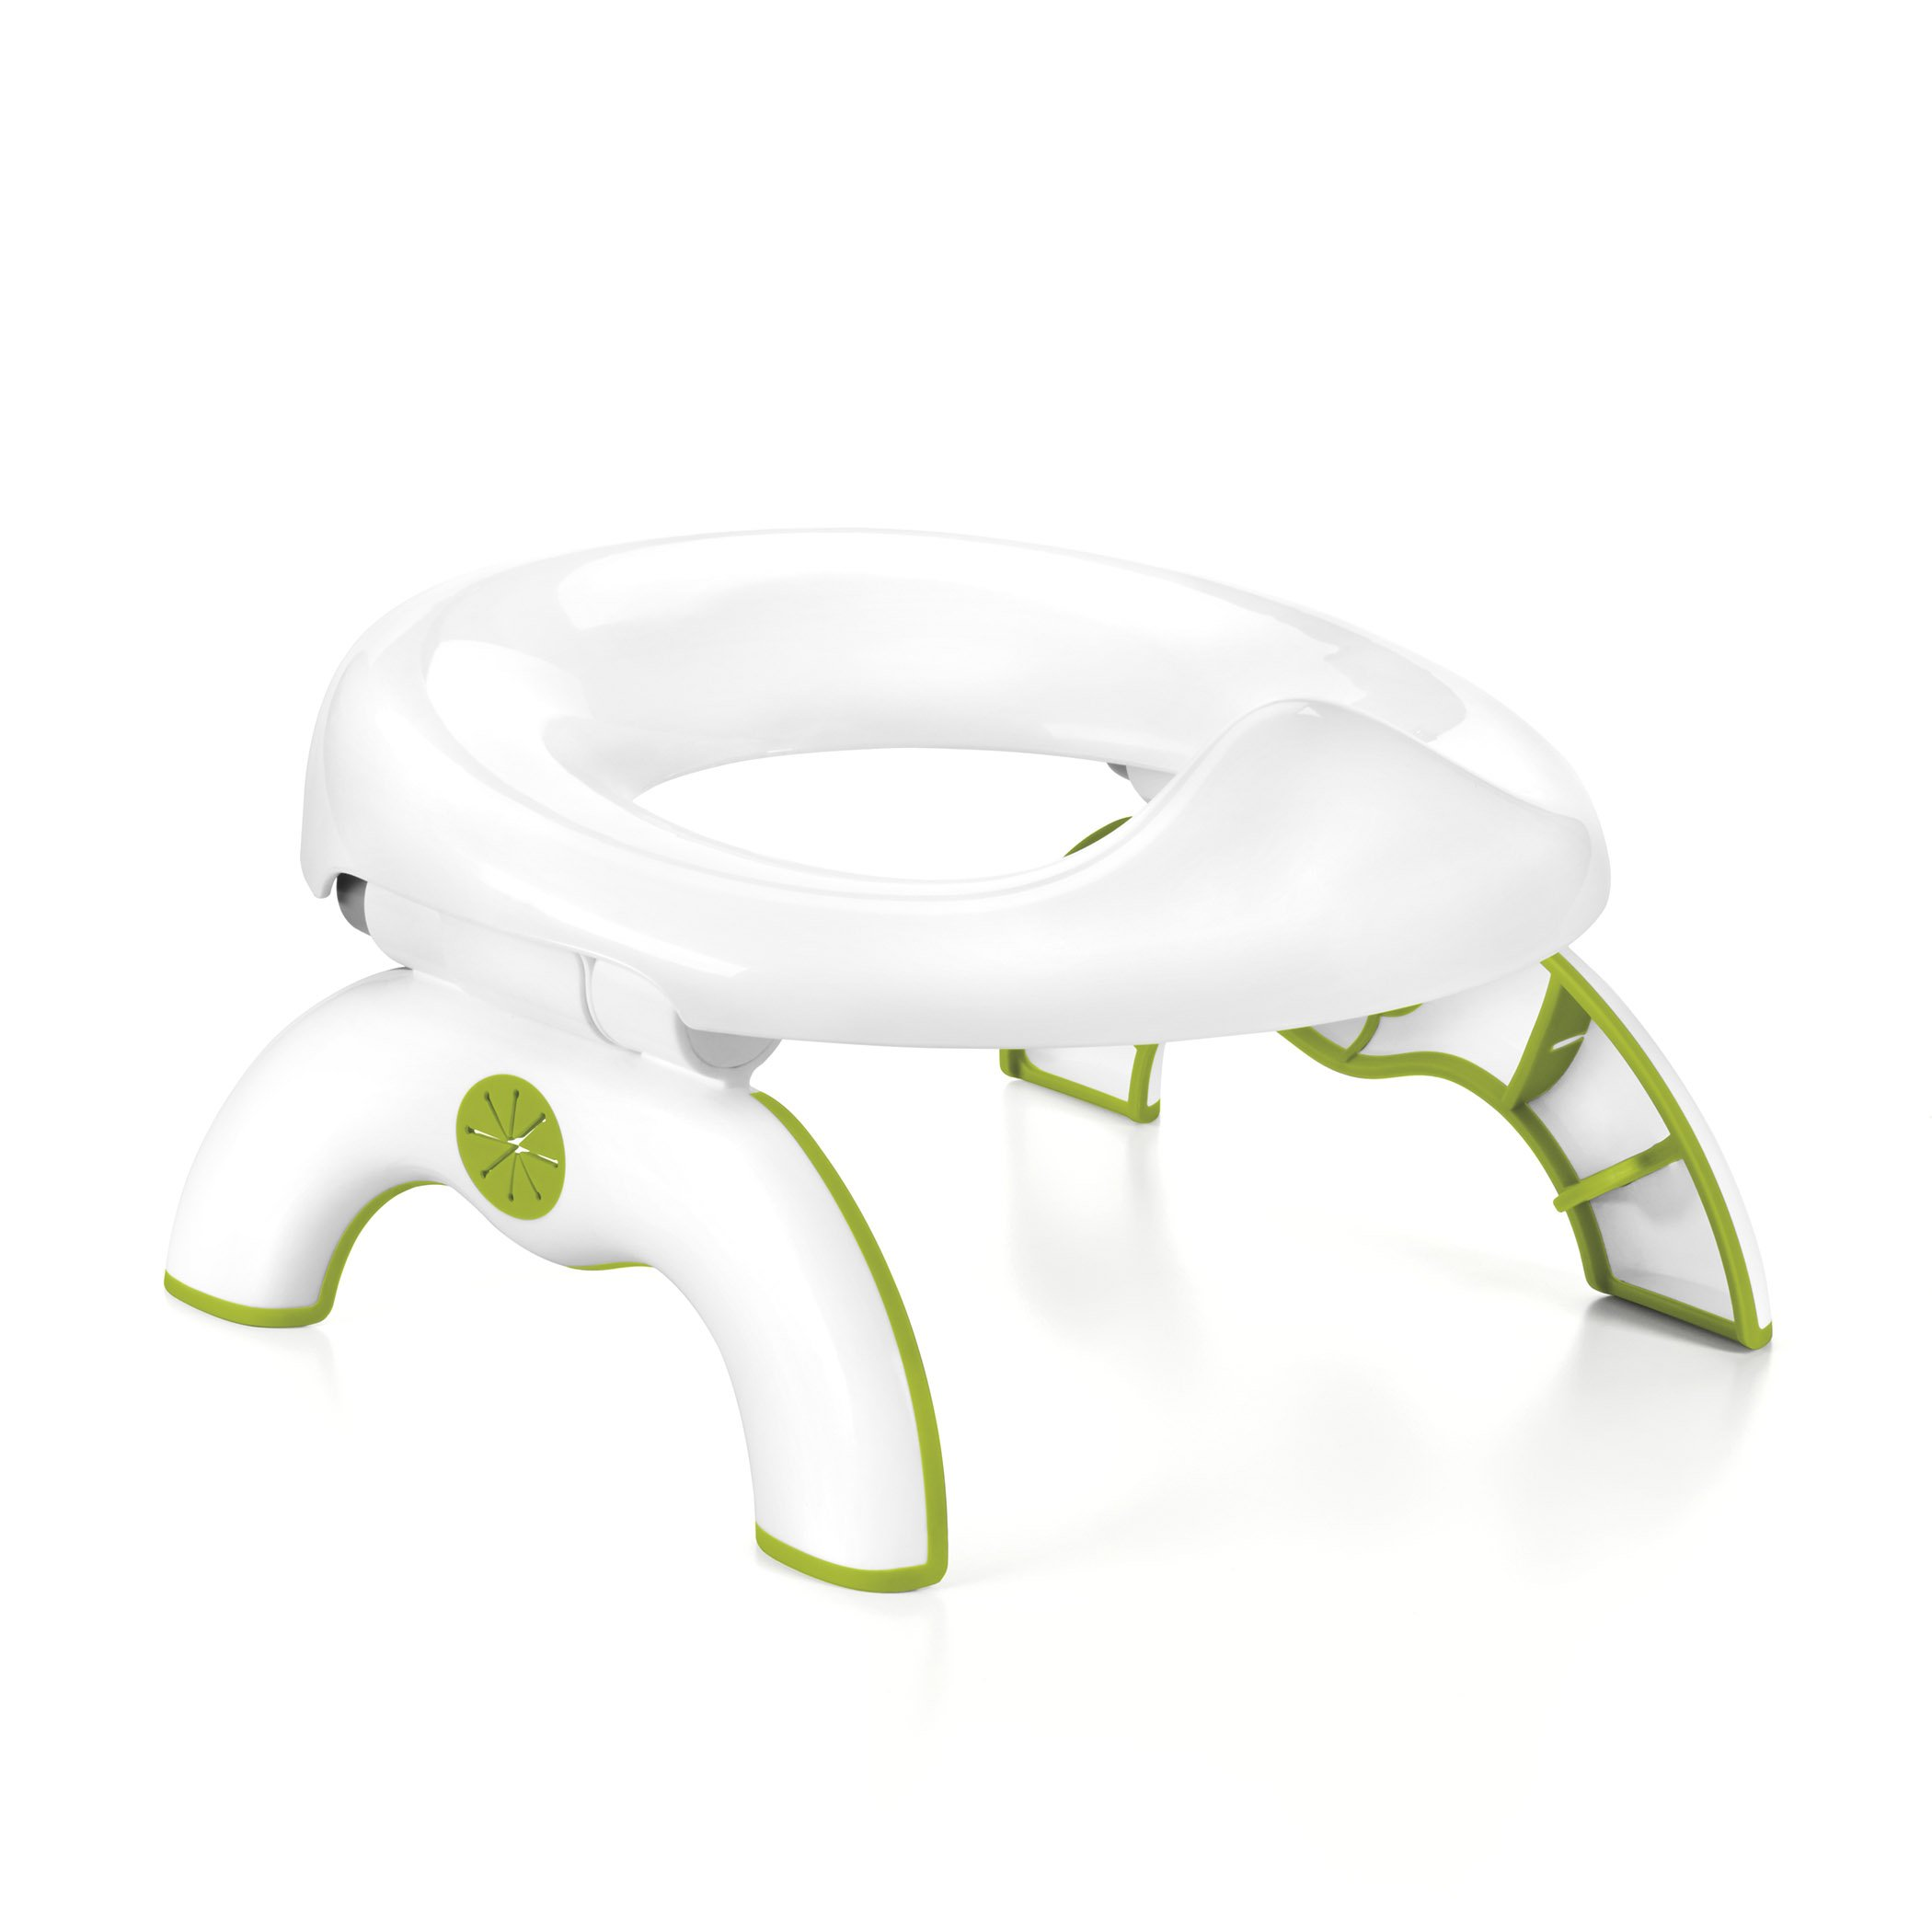 OXO Tot 2-in-1 Go Potty for Travel - Green